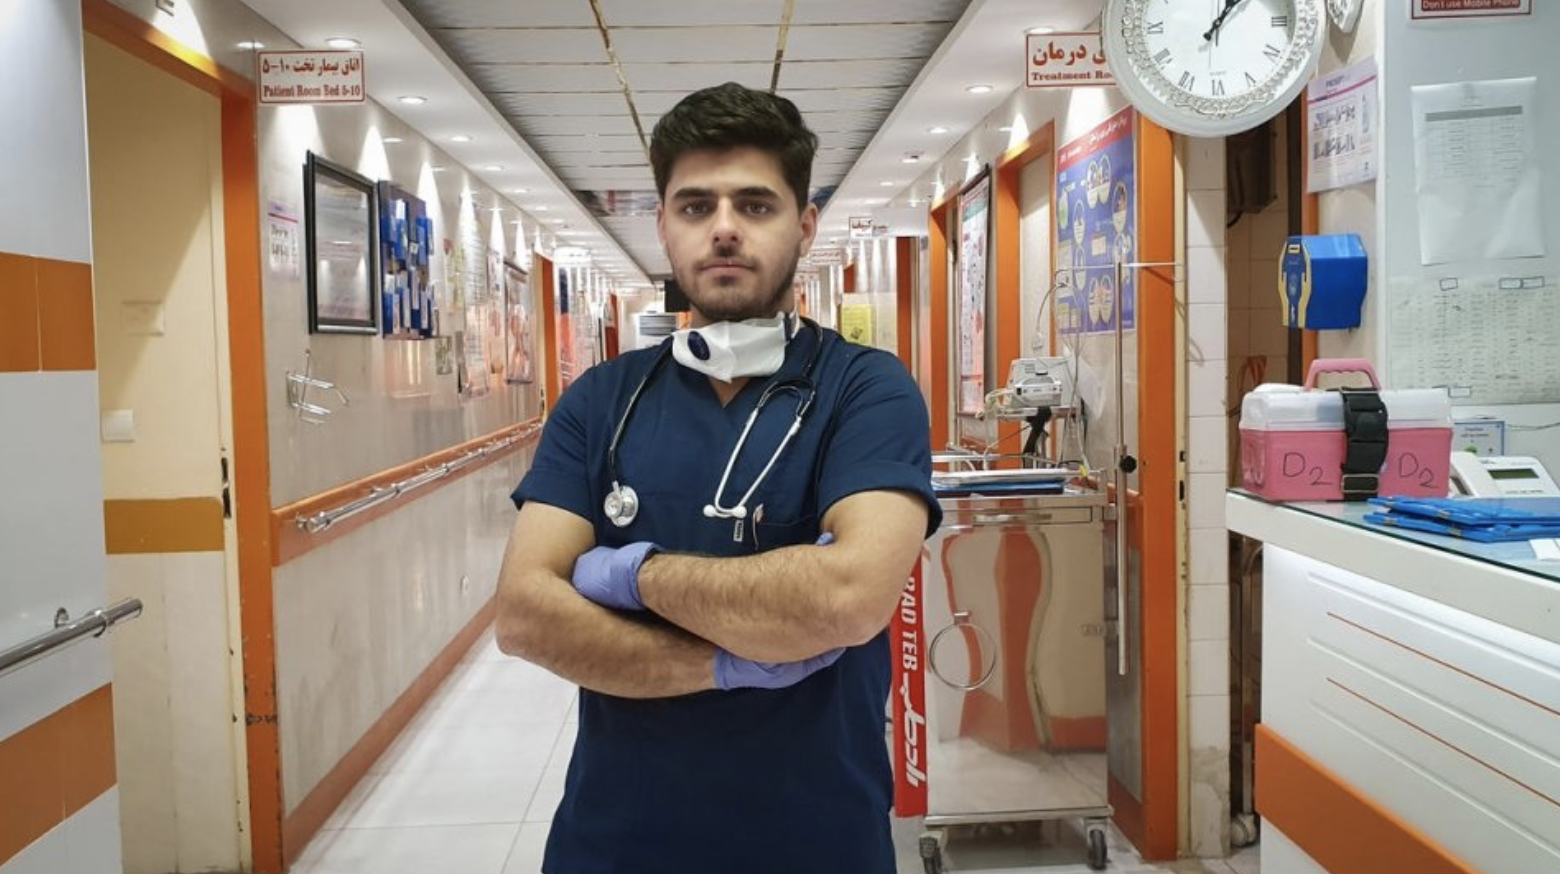 Refugee nurse Moheyman Alkhatavi, originally from Iraq, now works at the Taleghani Hospital in Abadan, Iran. (Photo courtesy UNHCR) Posted for media use